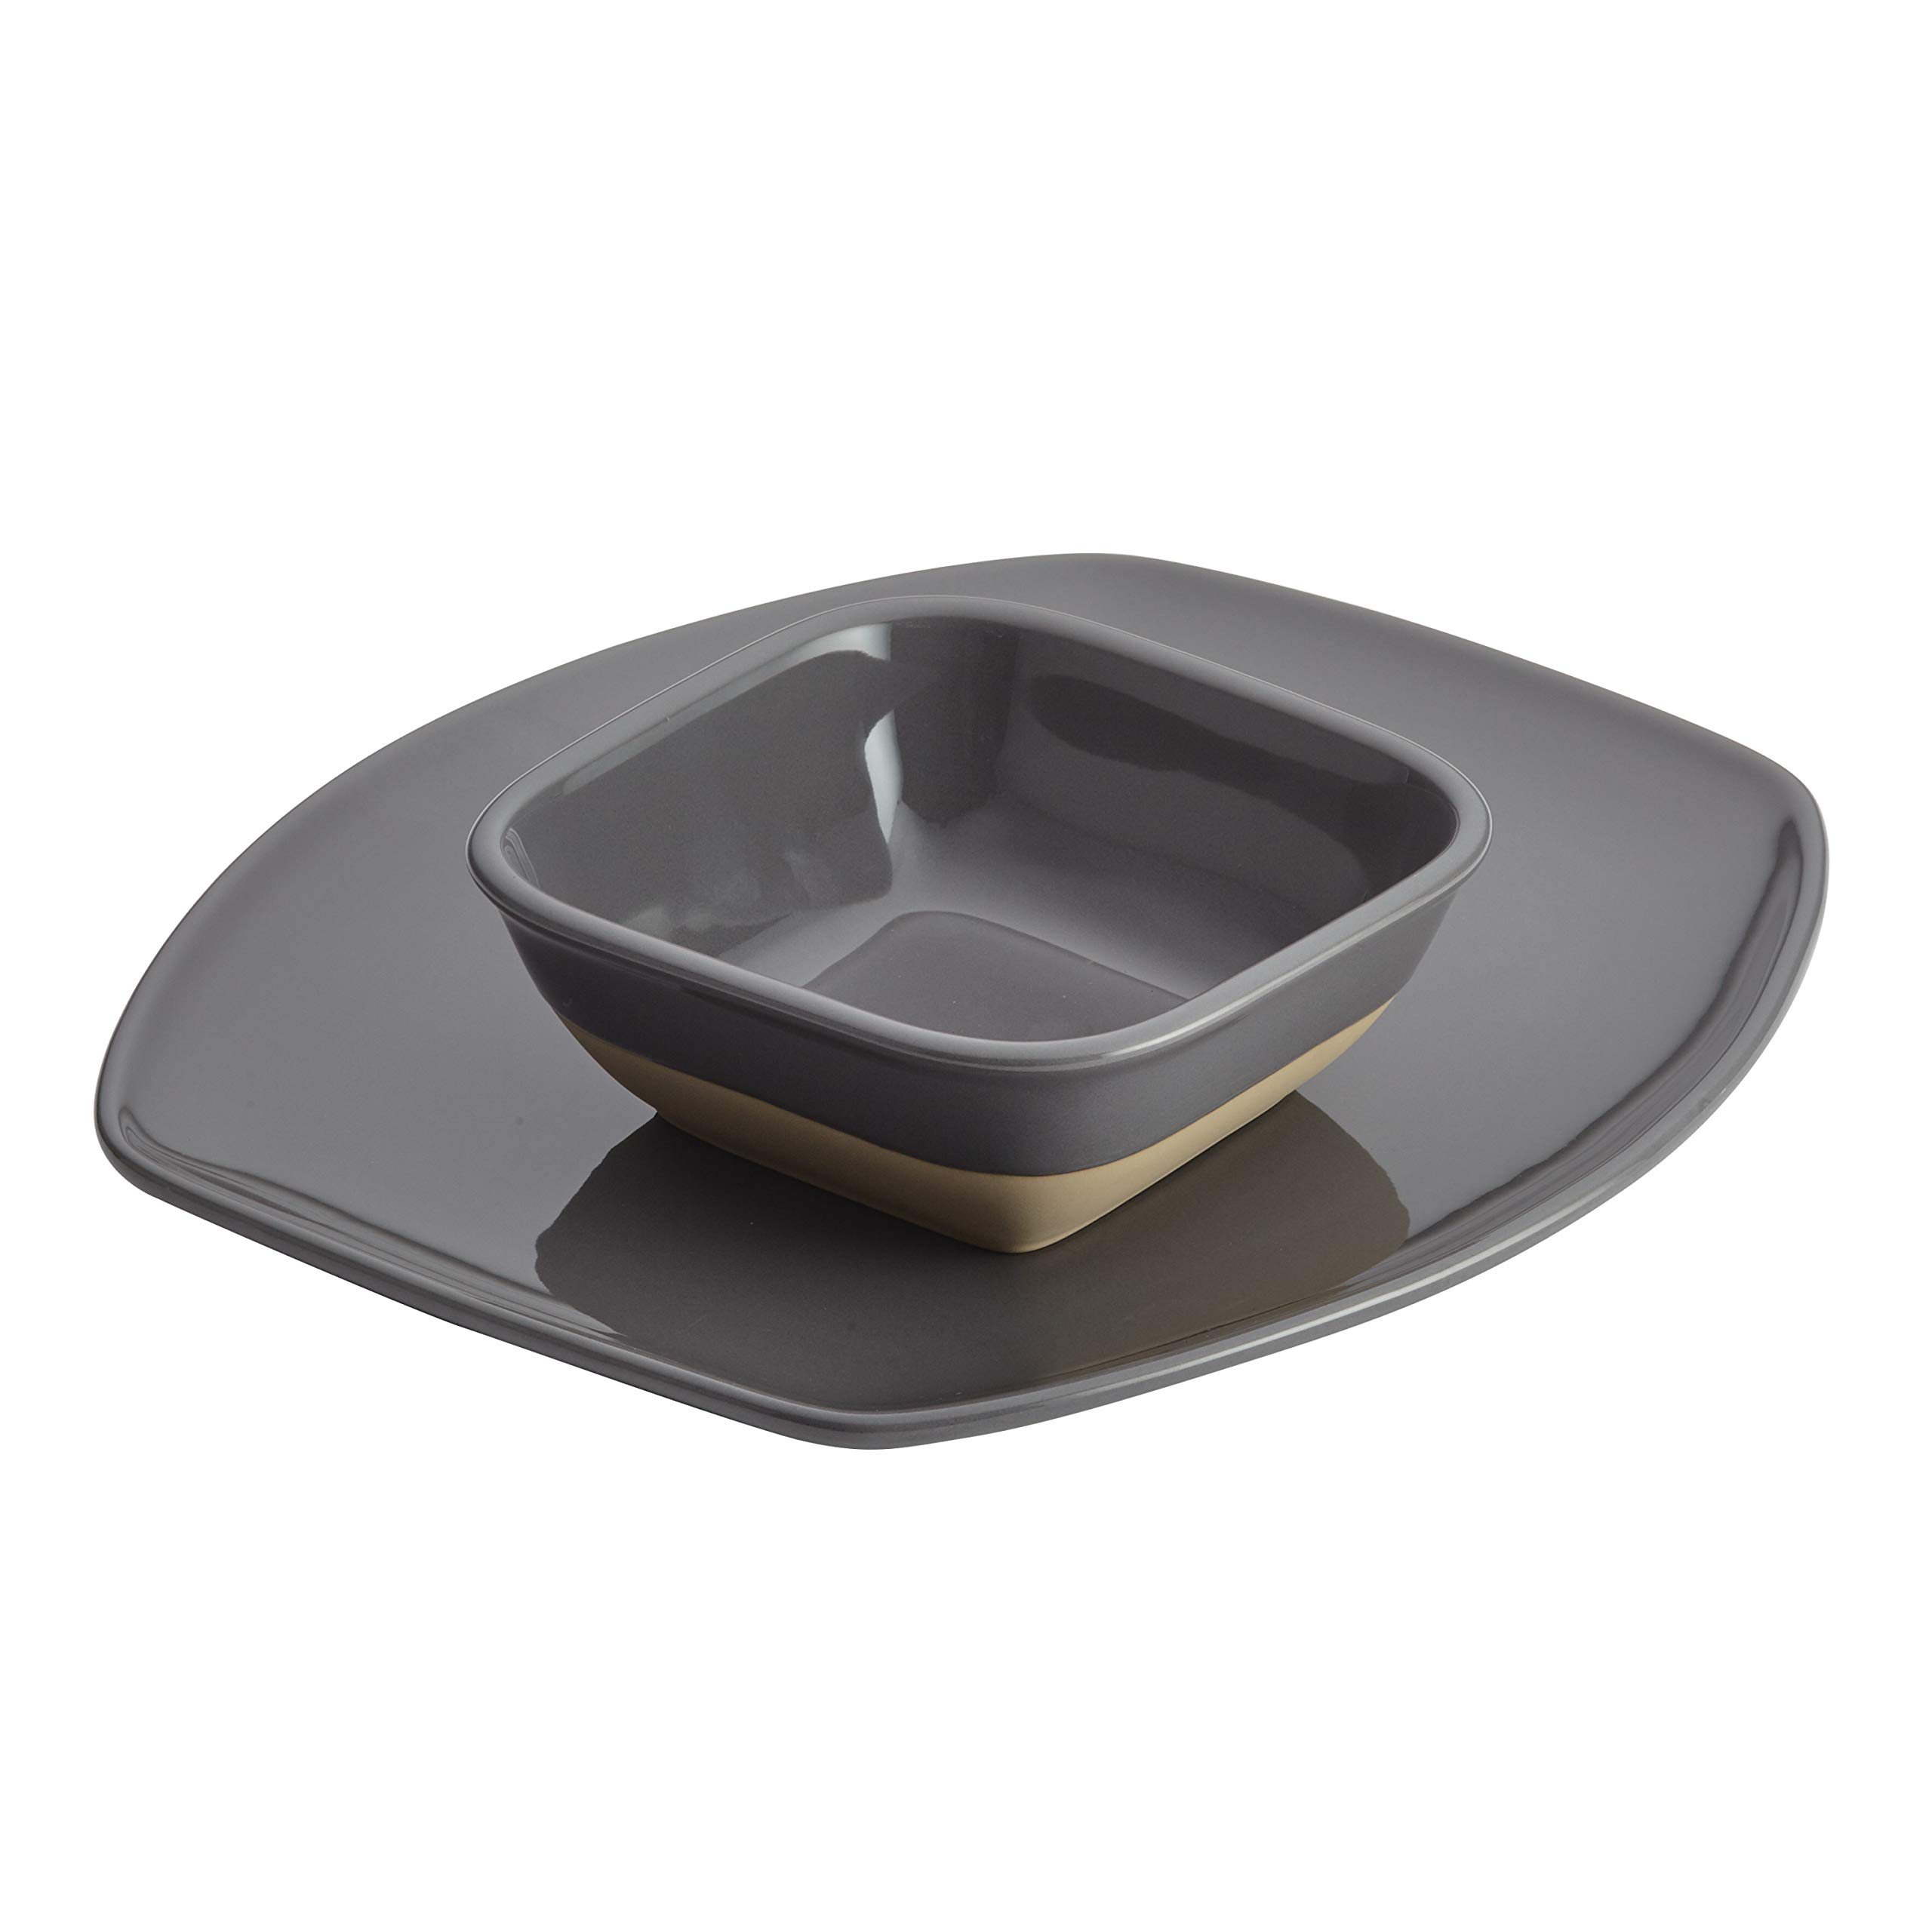 Rachael Ray 47535 Cityscapes Chip and Dip Set, 2 Piece, Dark Sea Salt Gray